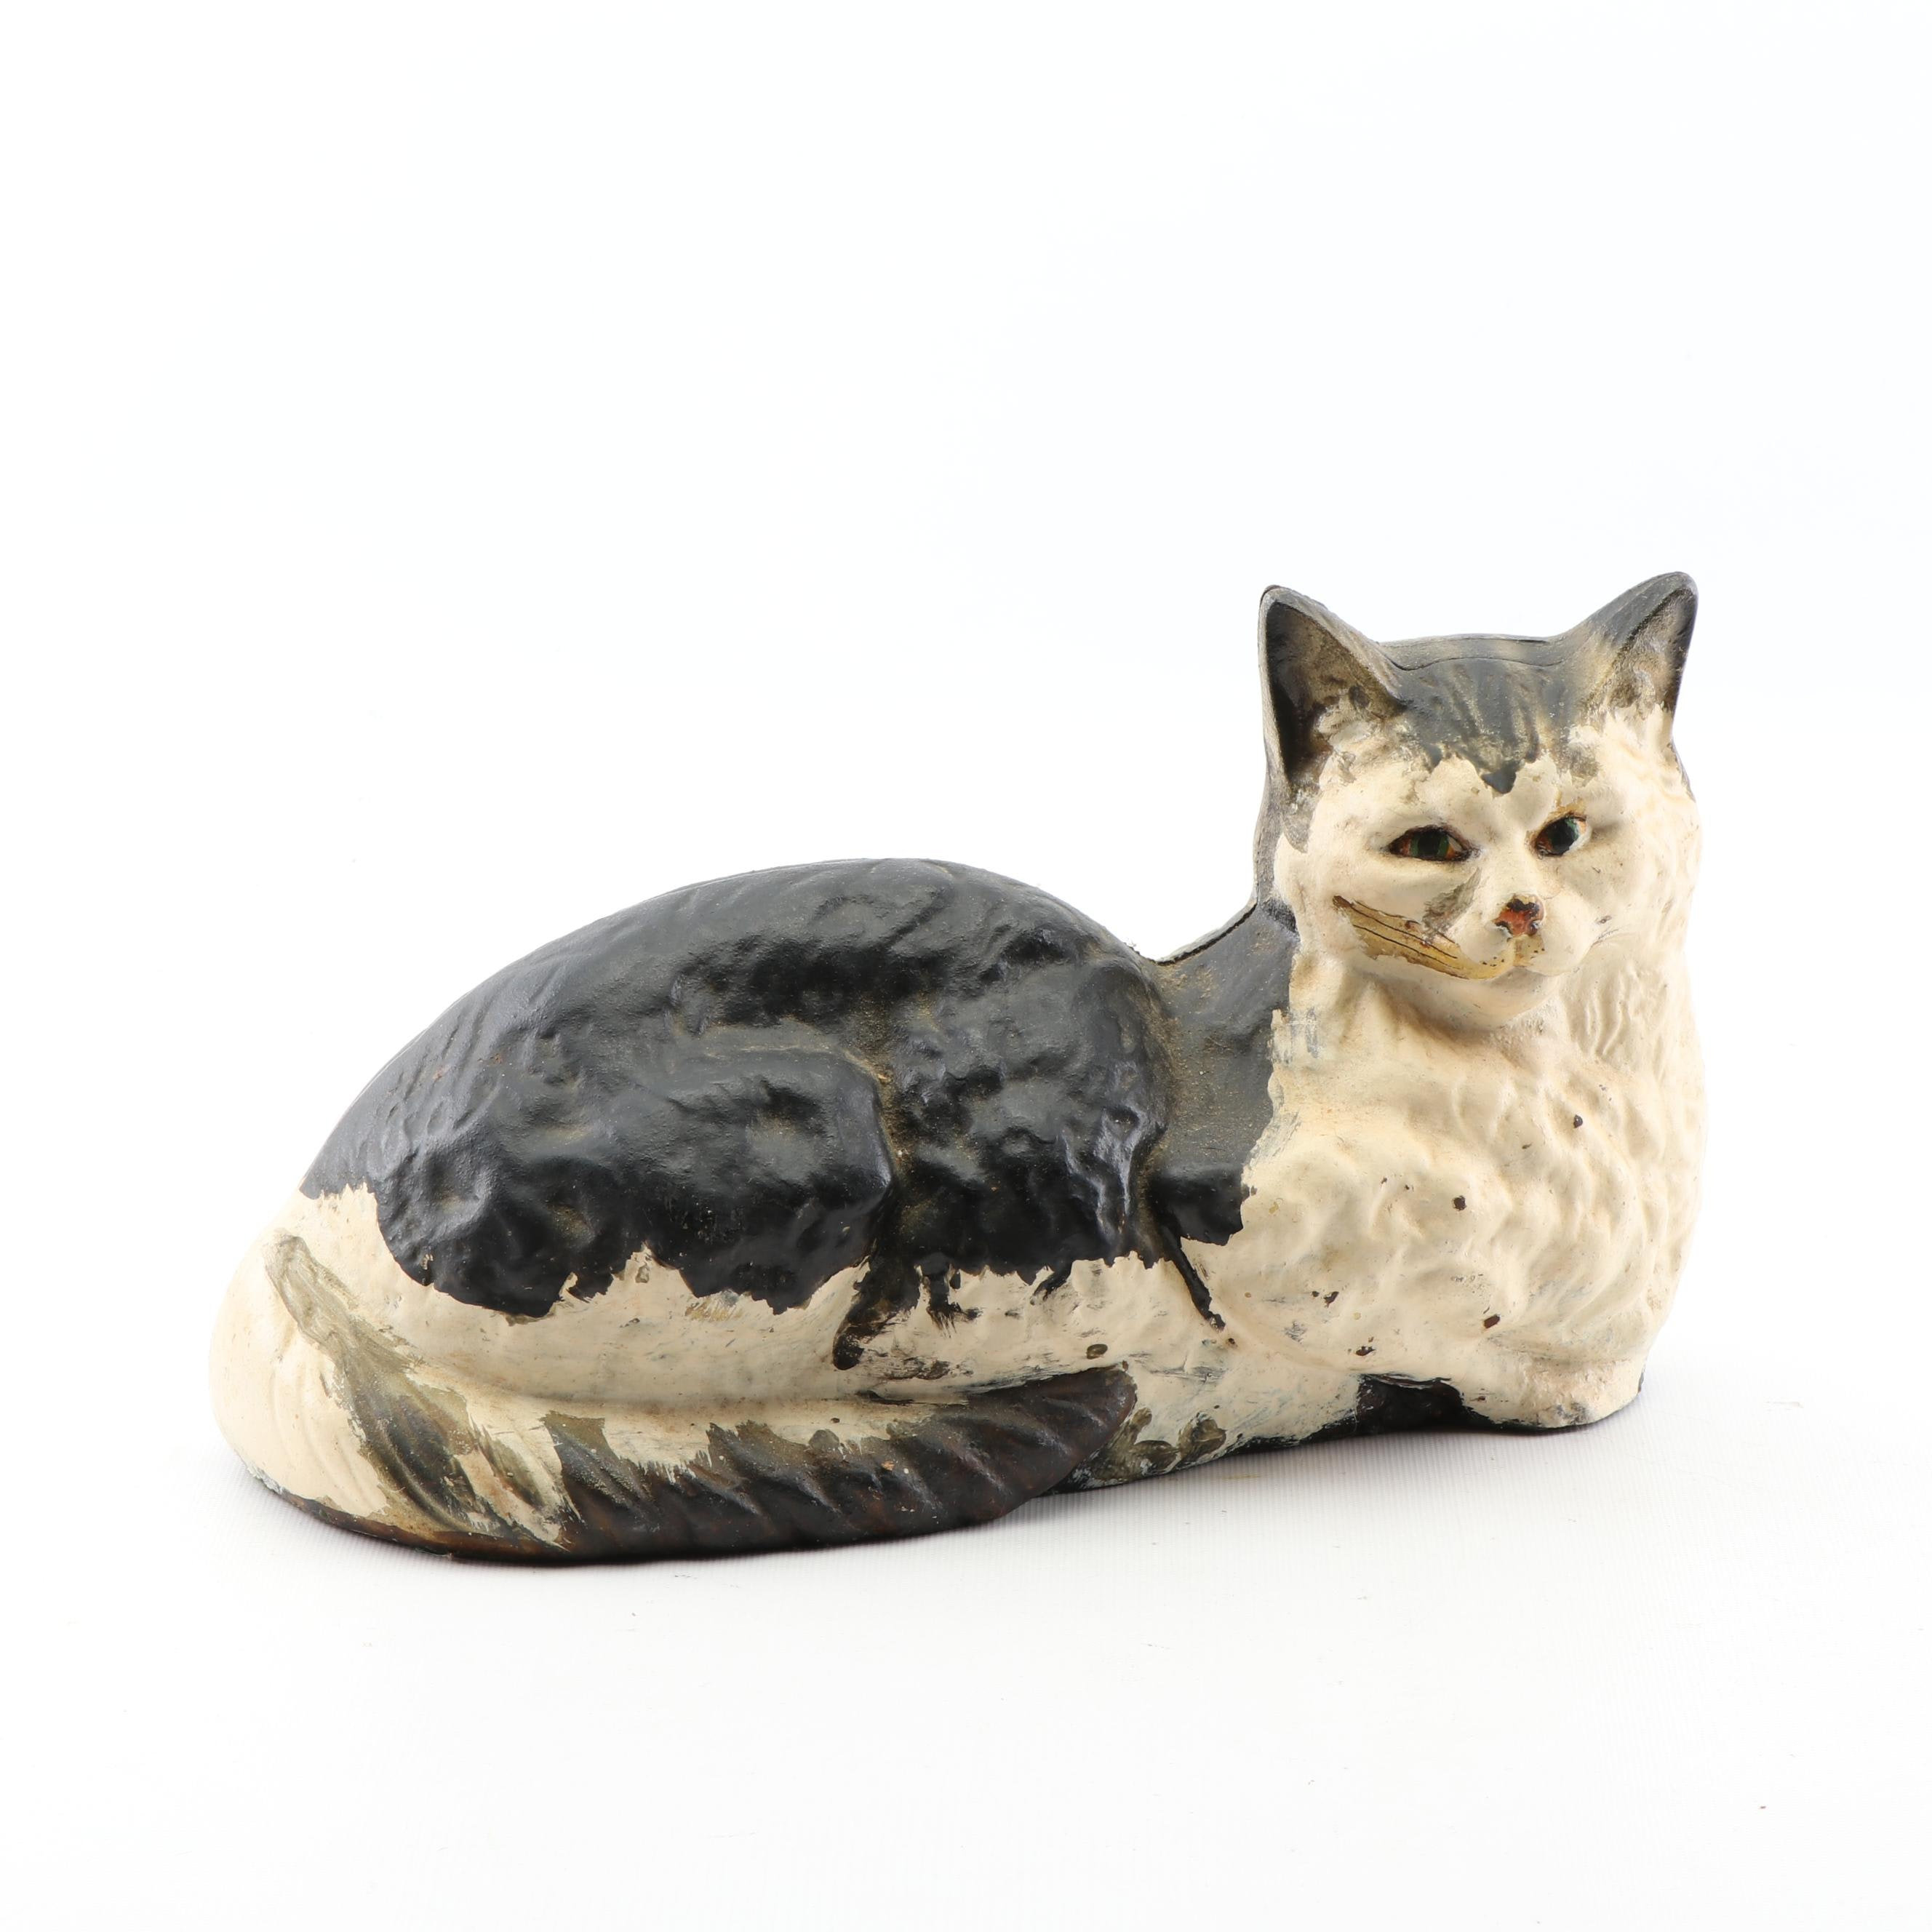 Cast Iron Hubley Style Cat Doorstop, Early to Mid 20th Century